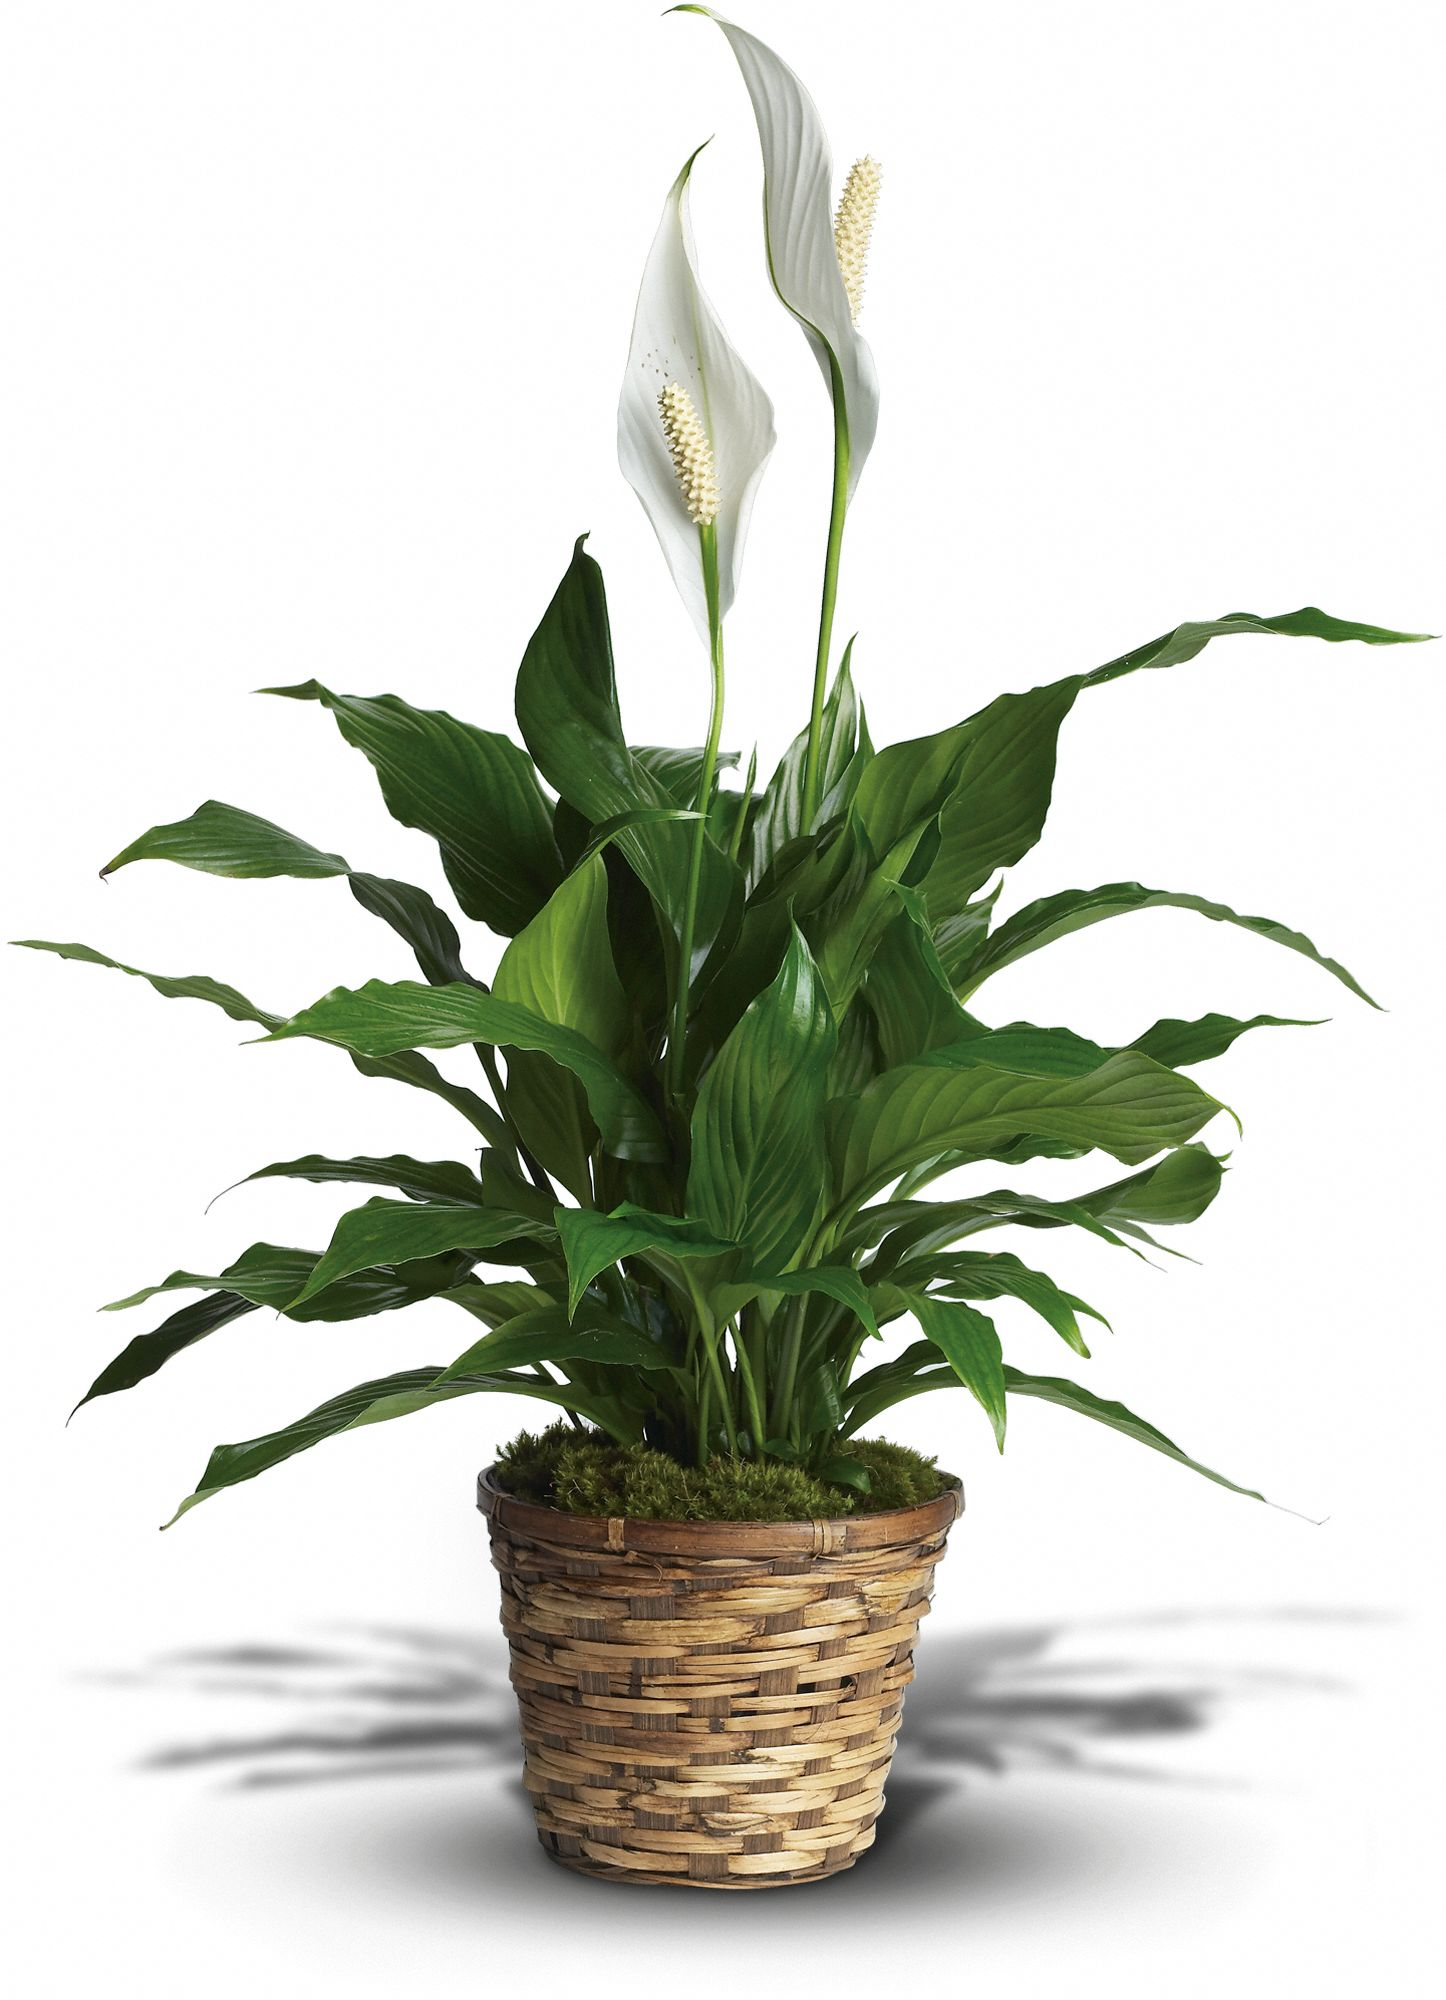 make your house greener with indoor plants, Natural flower